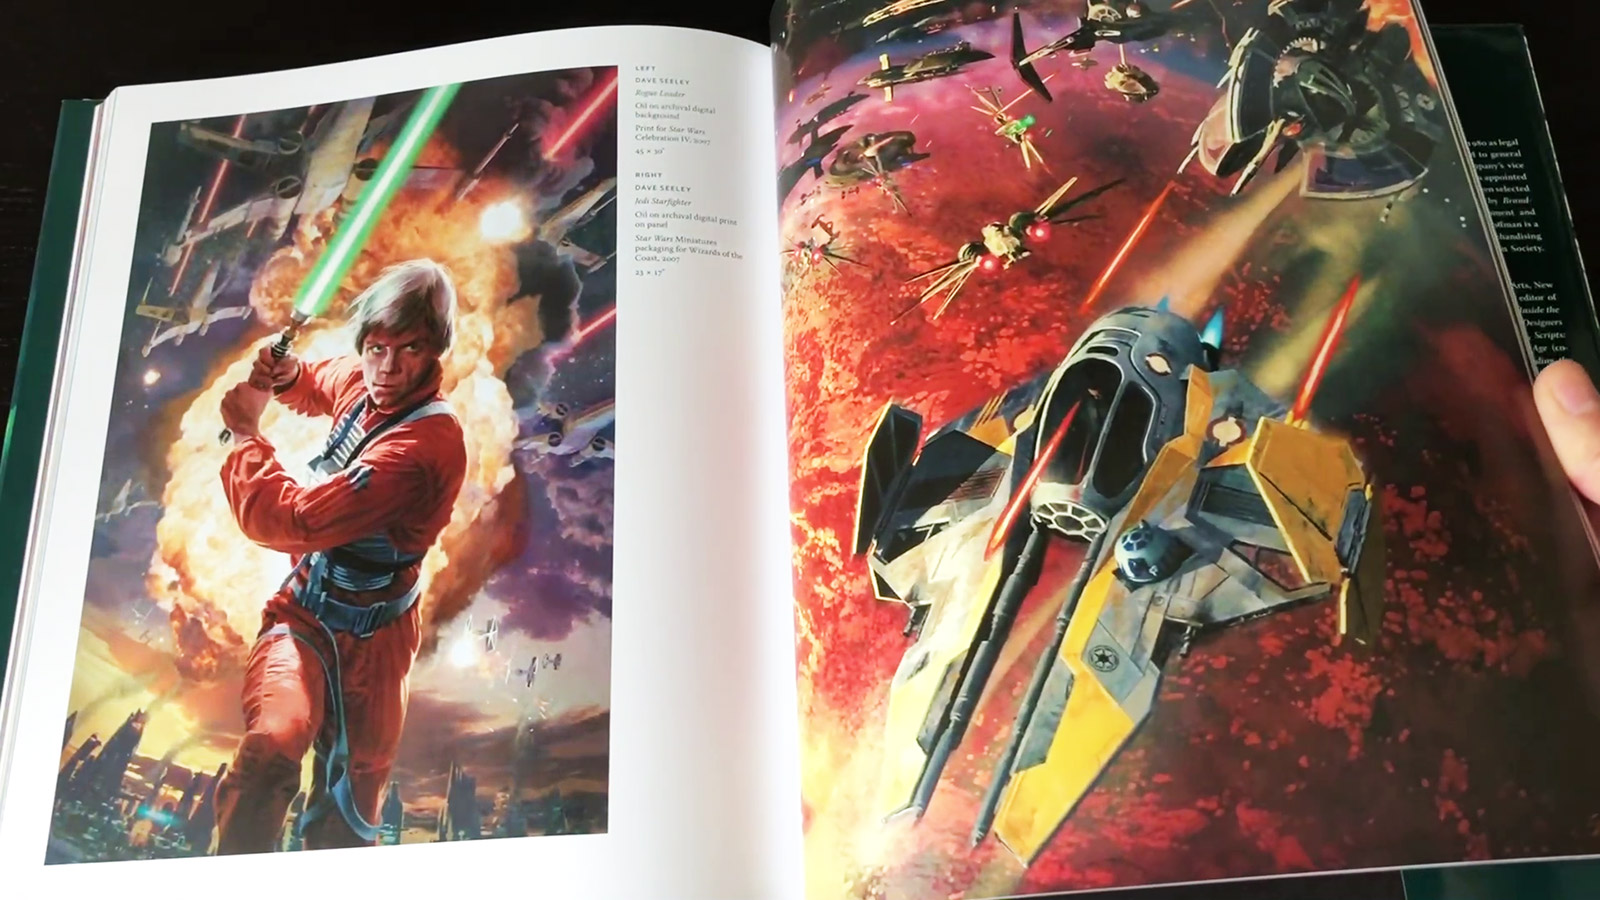 Star Wars Art: Illustration Book Review